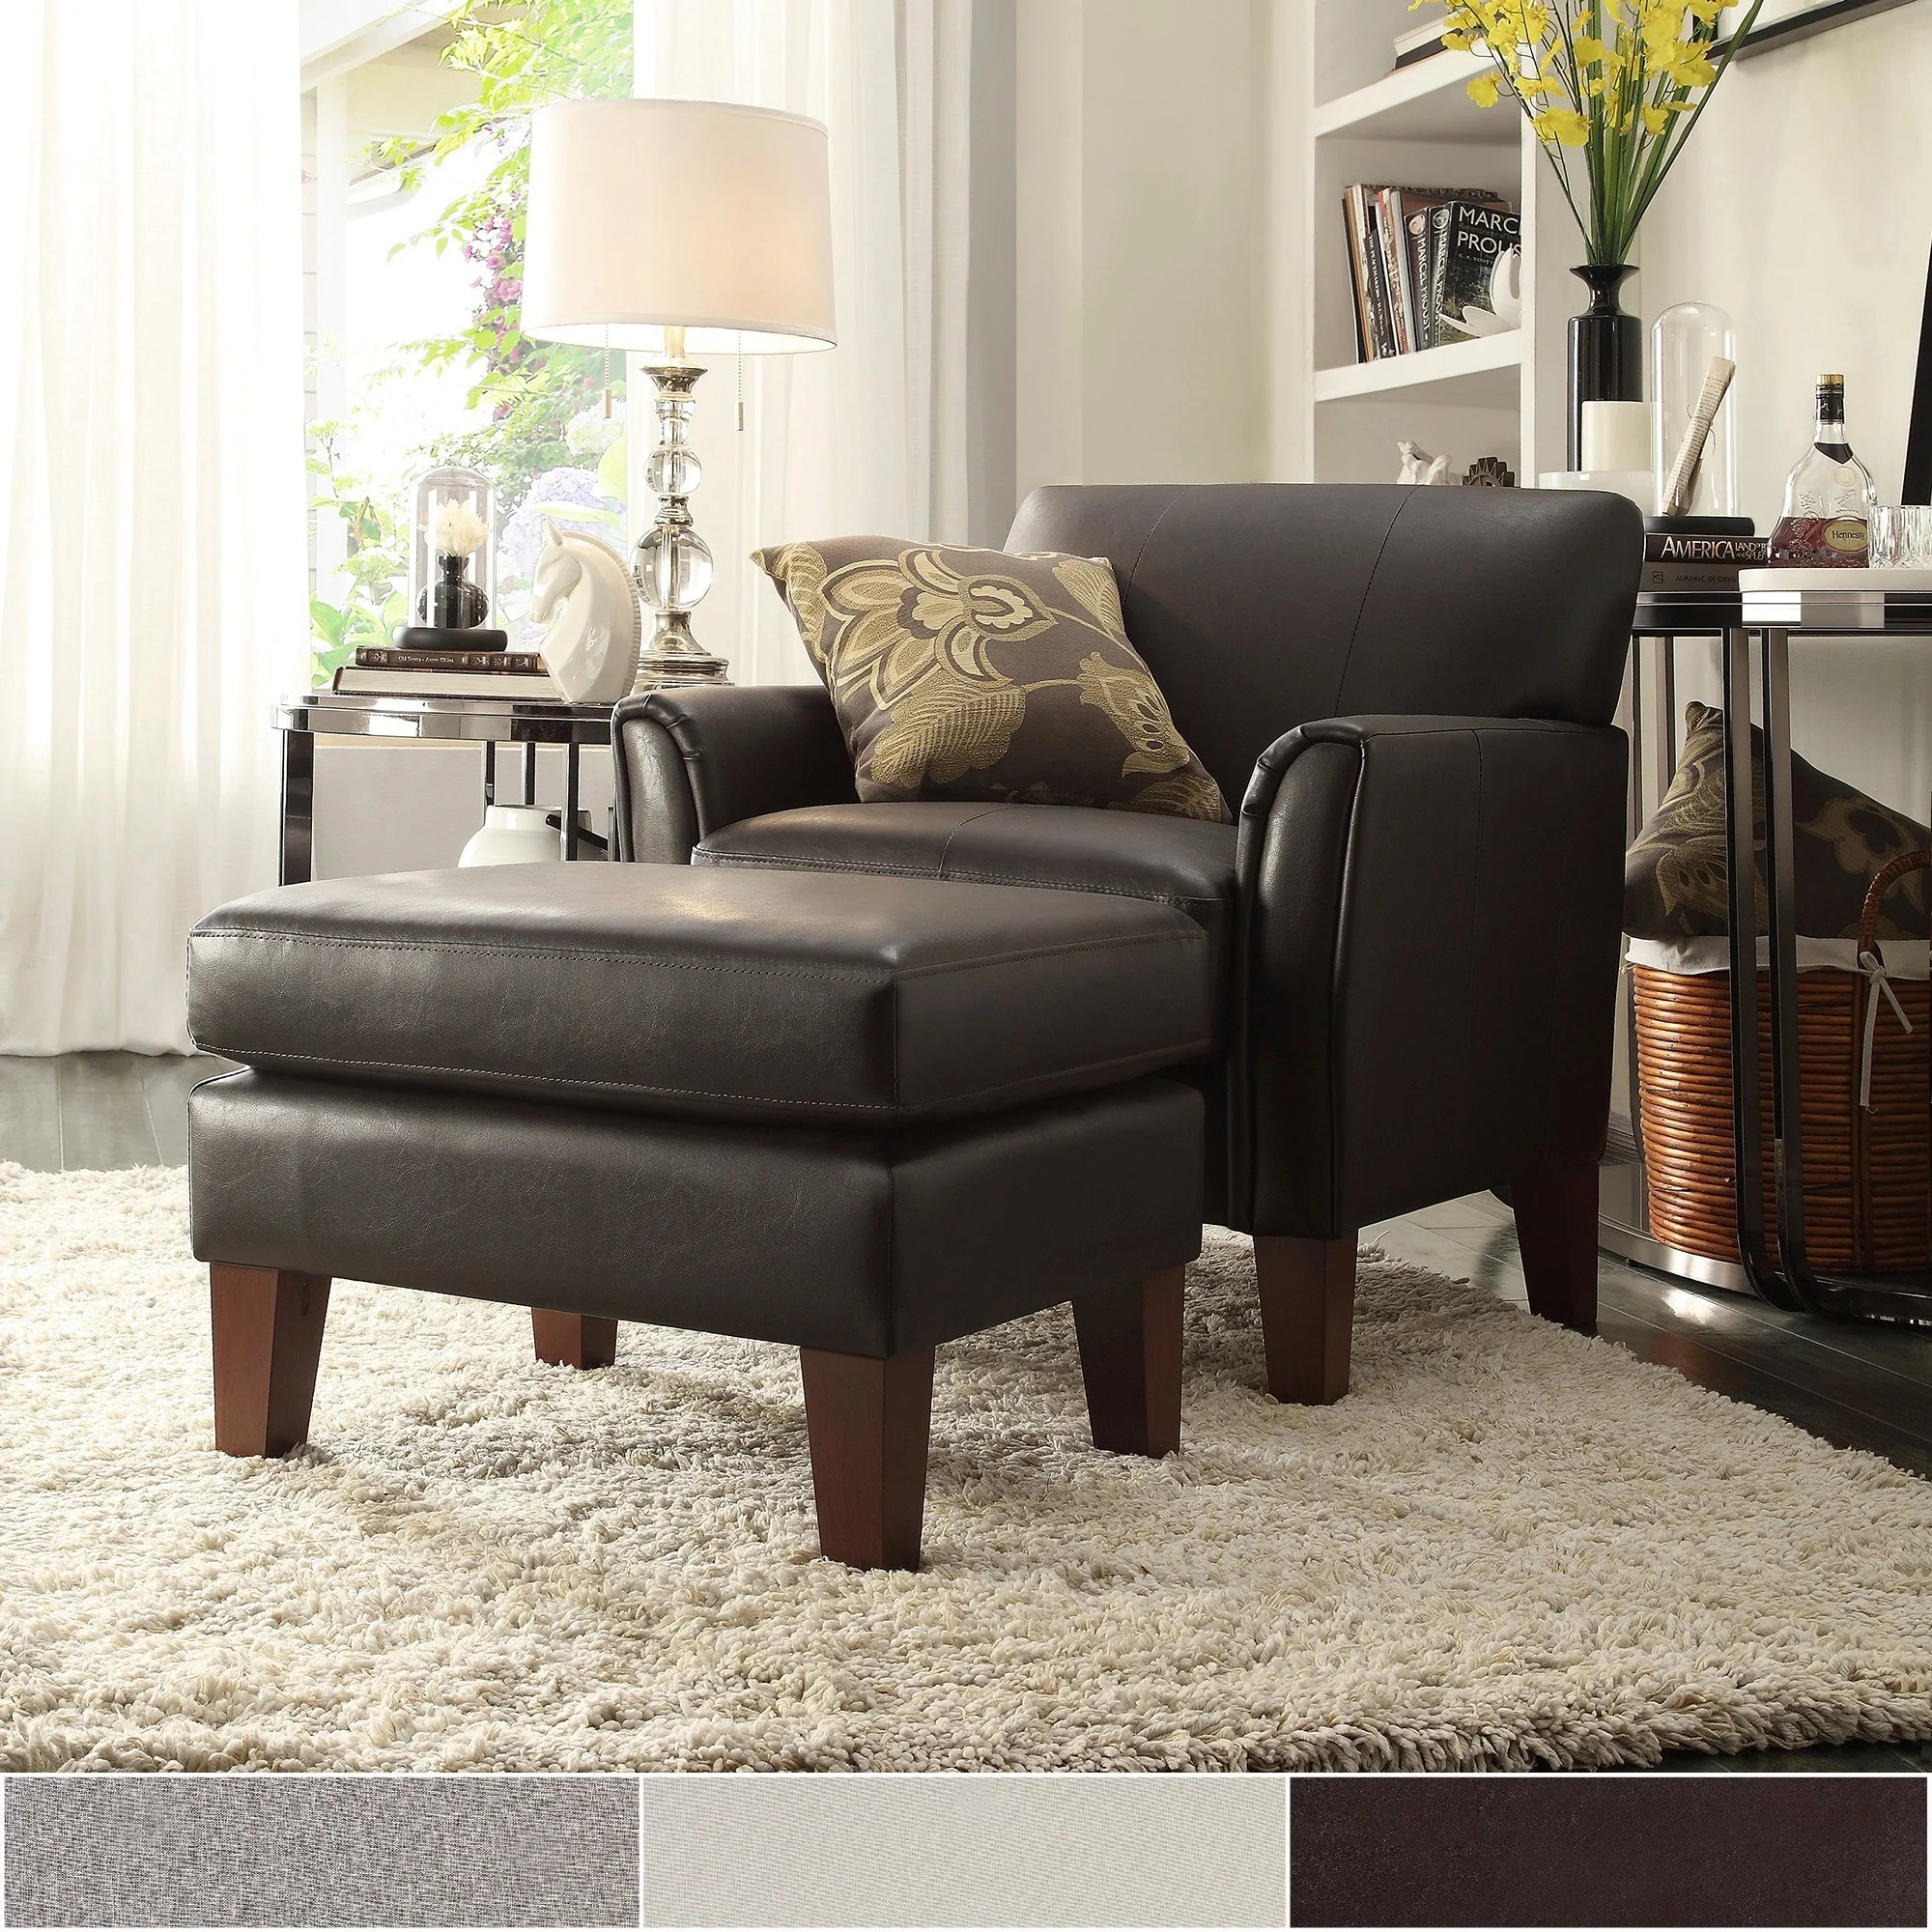 Overstuffed Chair And Ottoman Buy Chair Ottoman Sets Living Room Chairs Online At Overstock